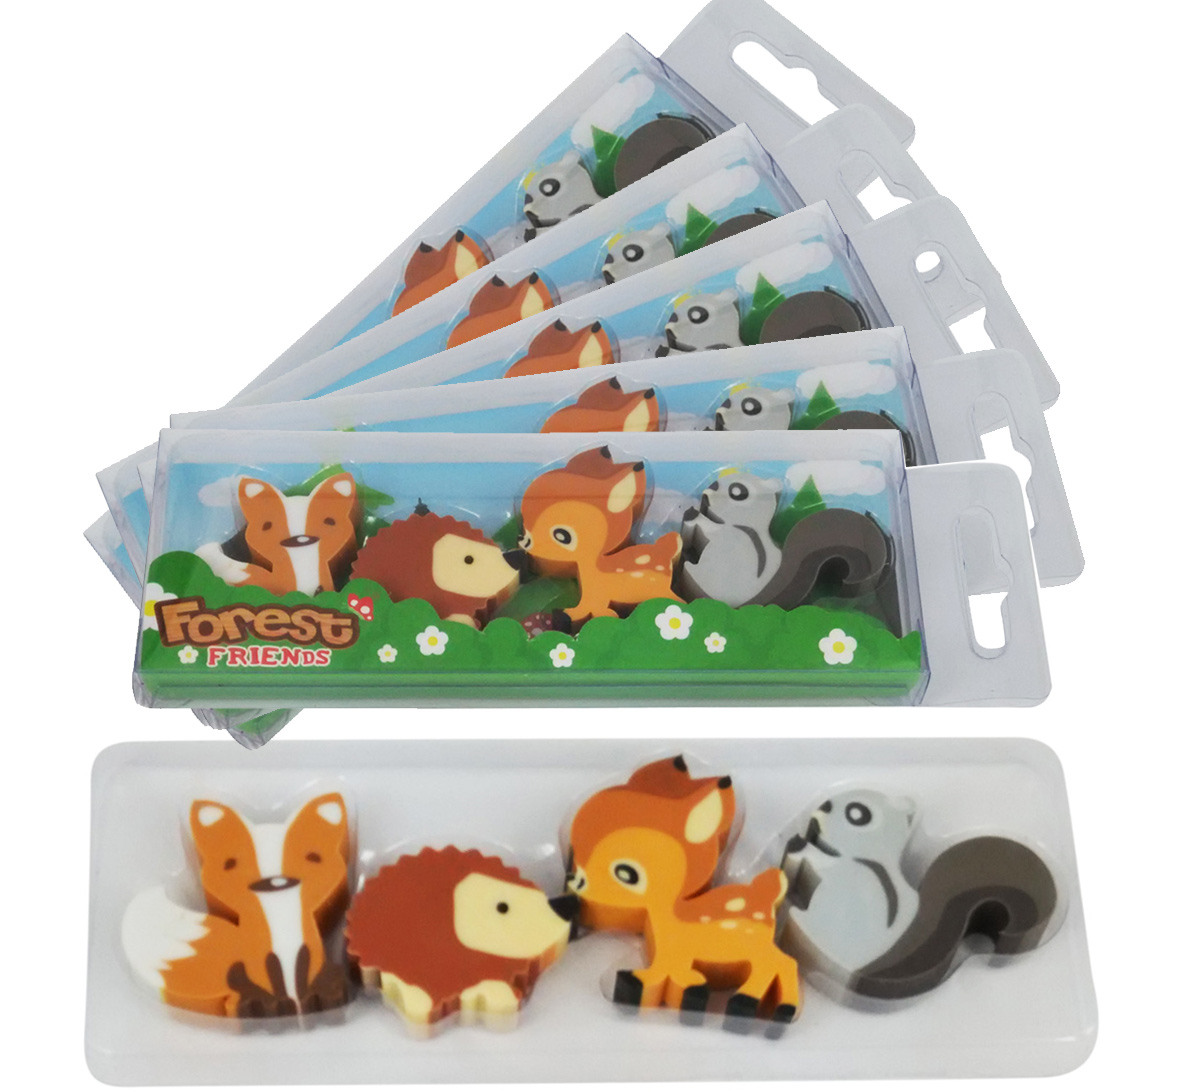 Forest Friends Gifts